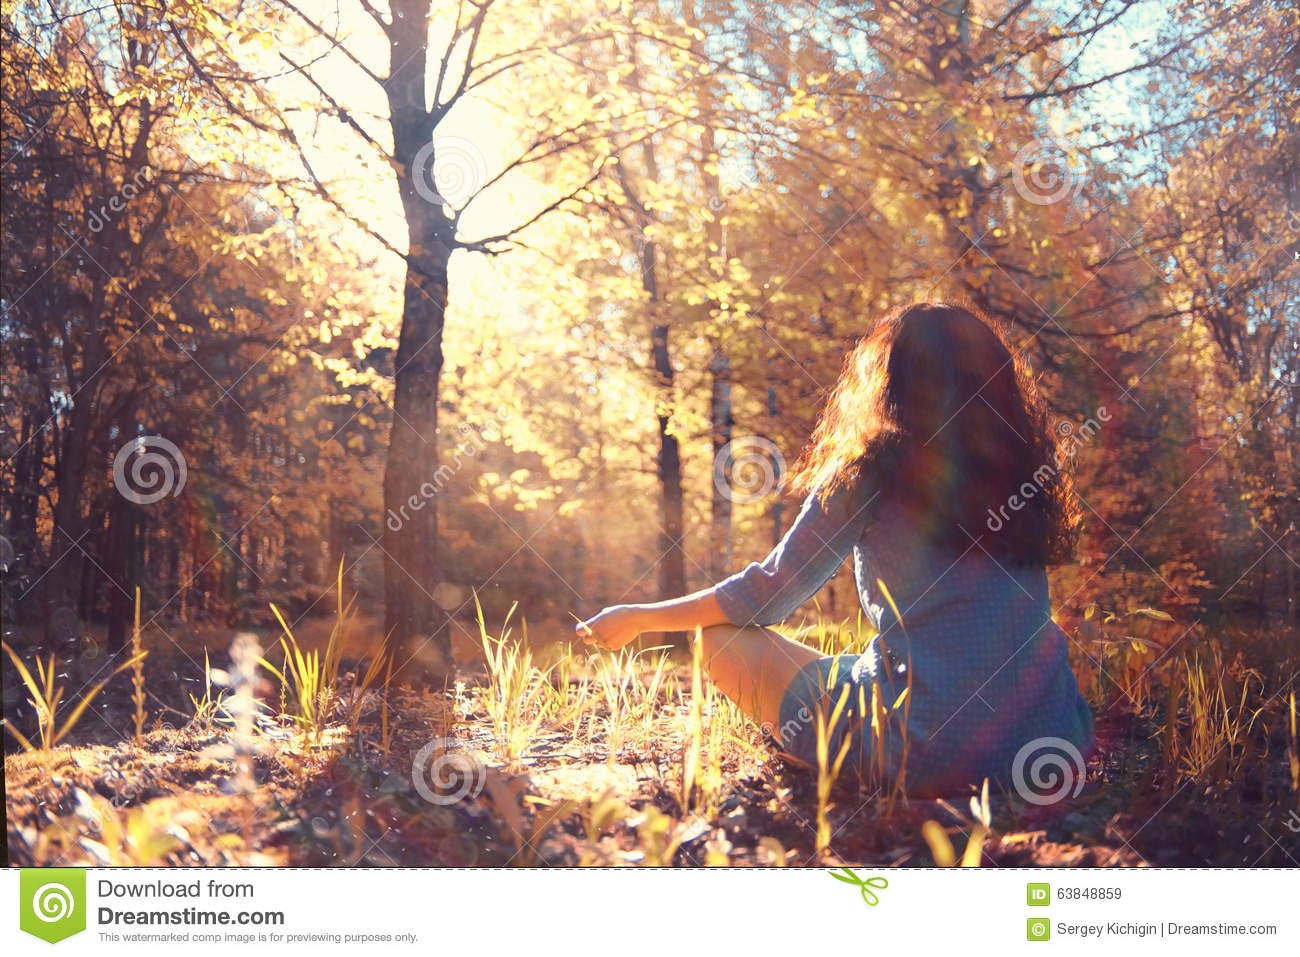 Meditation in forest stock image. Image of confidence